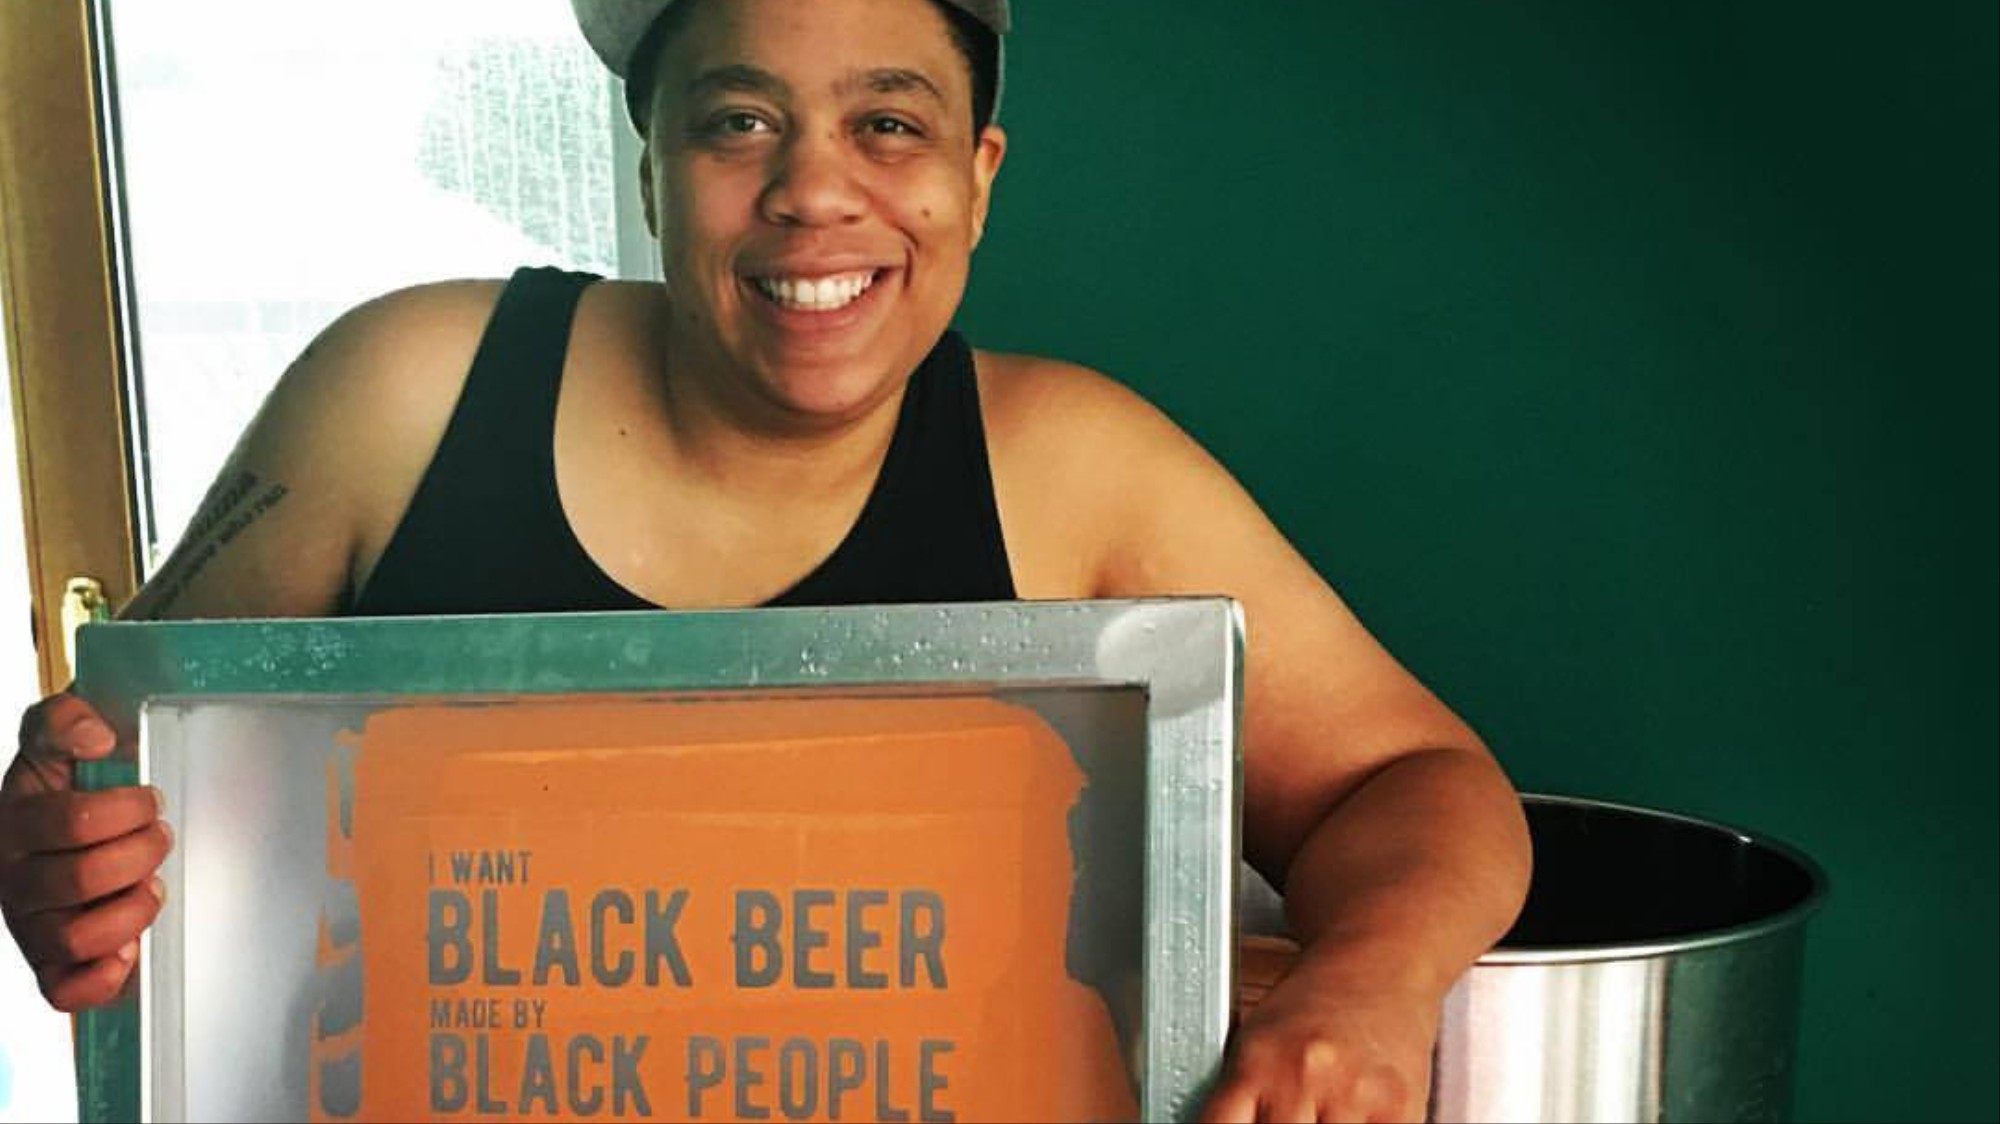 Owner of Queer, Black-Owned Brewery Says 'White Supremacy